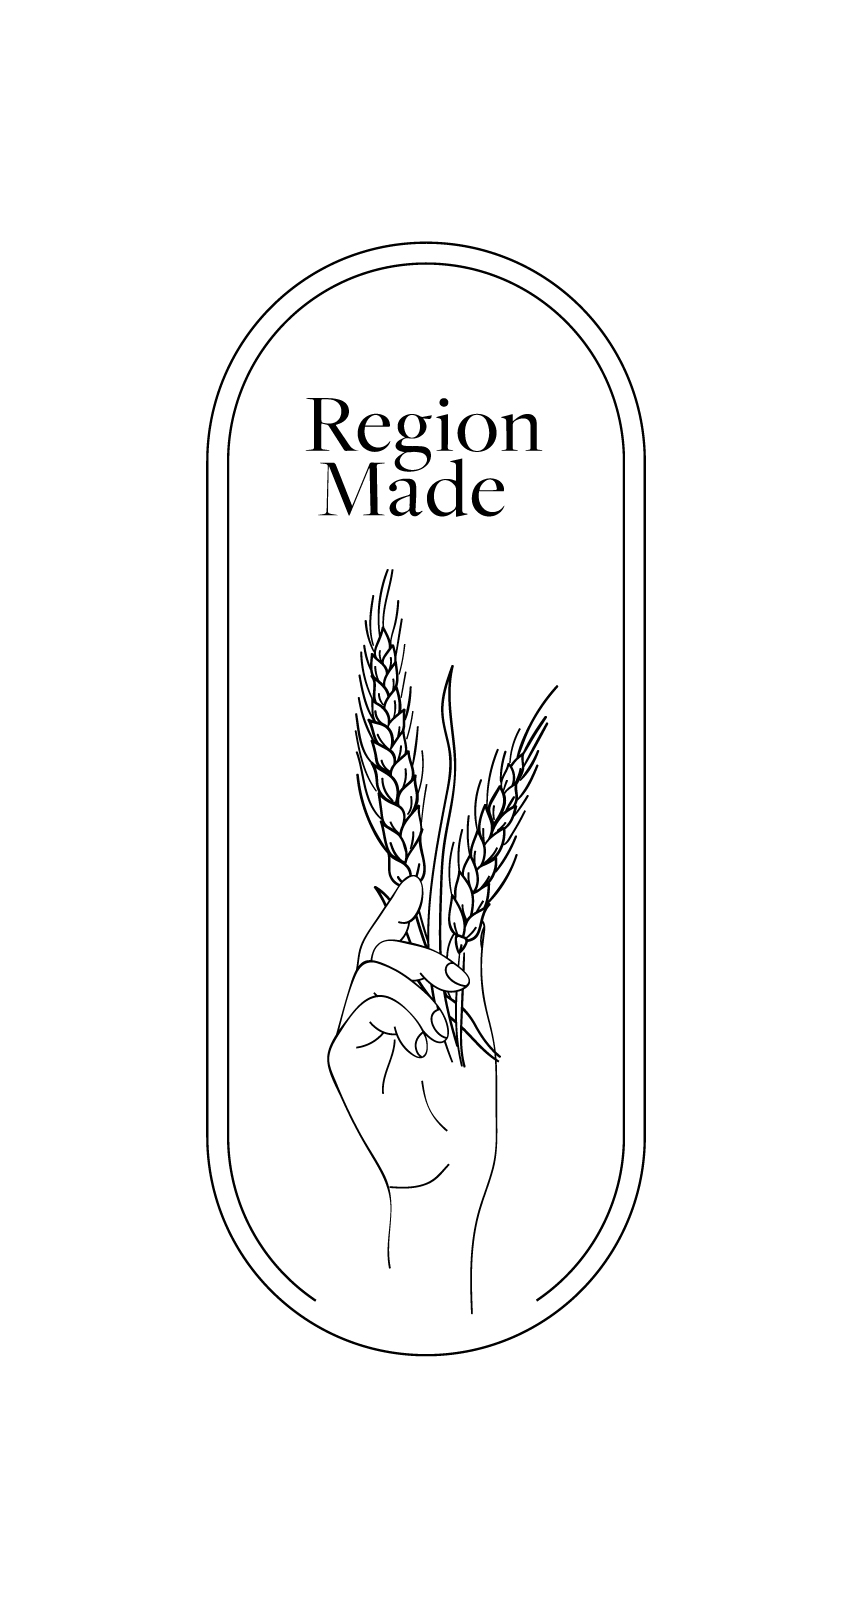 Region Made Final Logos BW-01.jpg